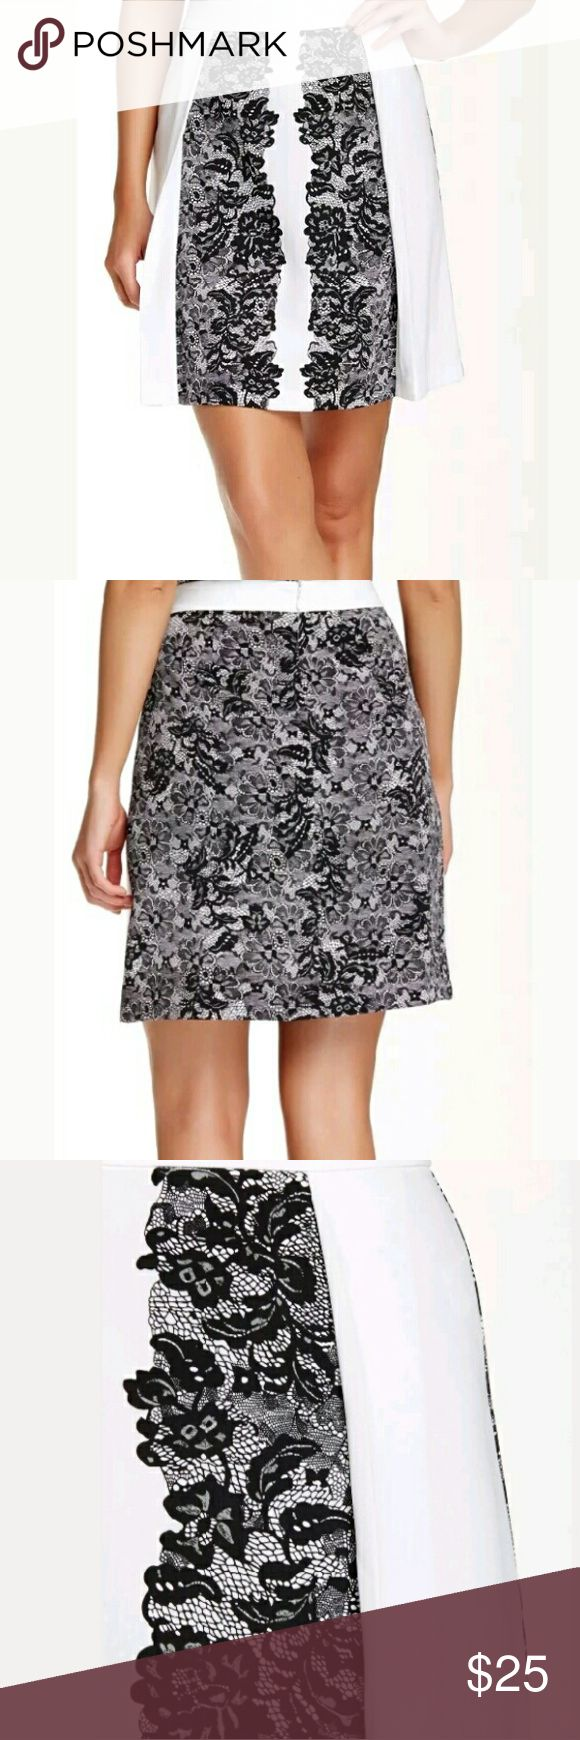 Laundry Shelli Segal Floral A Line Skirt Beautiful Skirt!! Size 8 in excellent condition! Laundry by Shelli Segal Skirts Midi